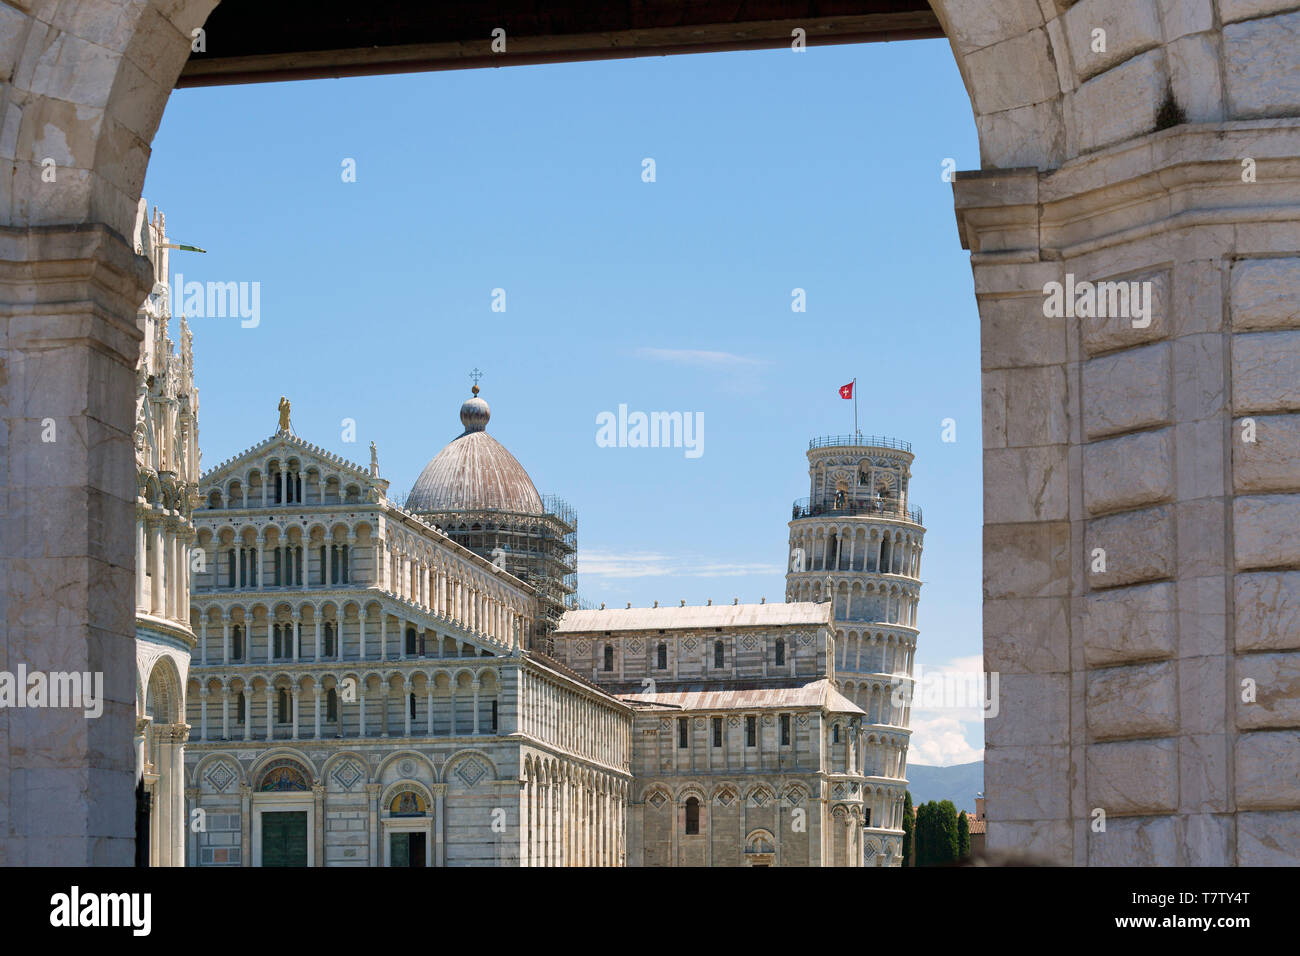 Piazza dei Miracoli, showing the the Cathedral and Leaning Tower of Pisa Stock Photo